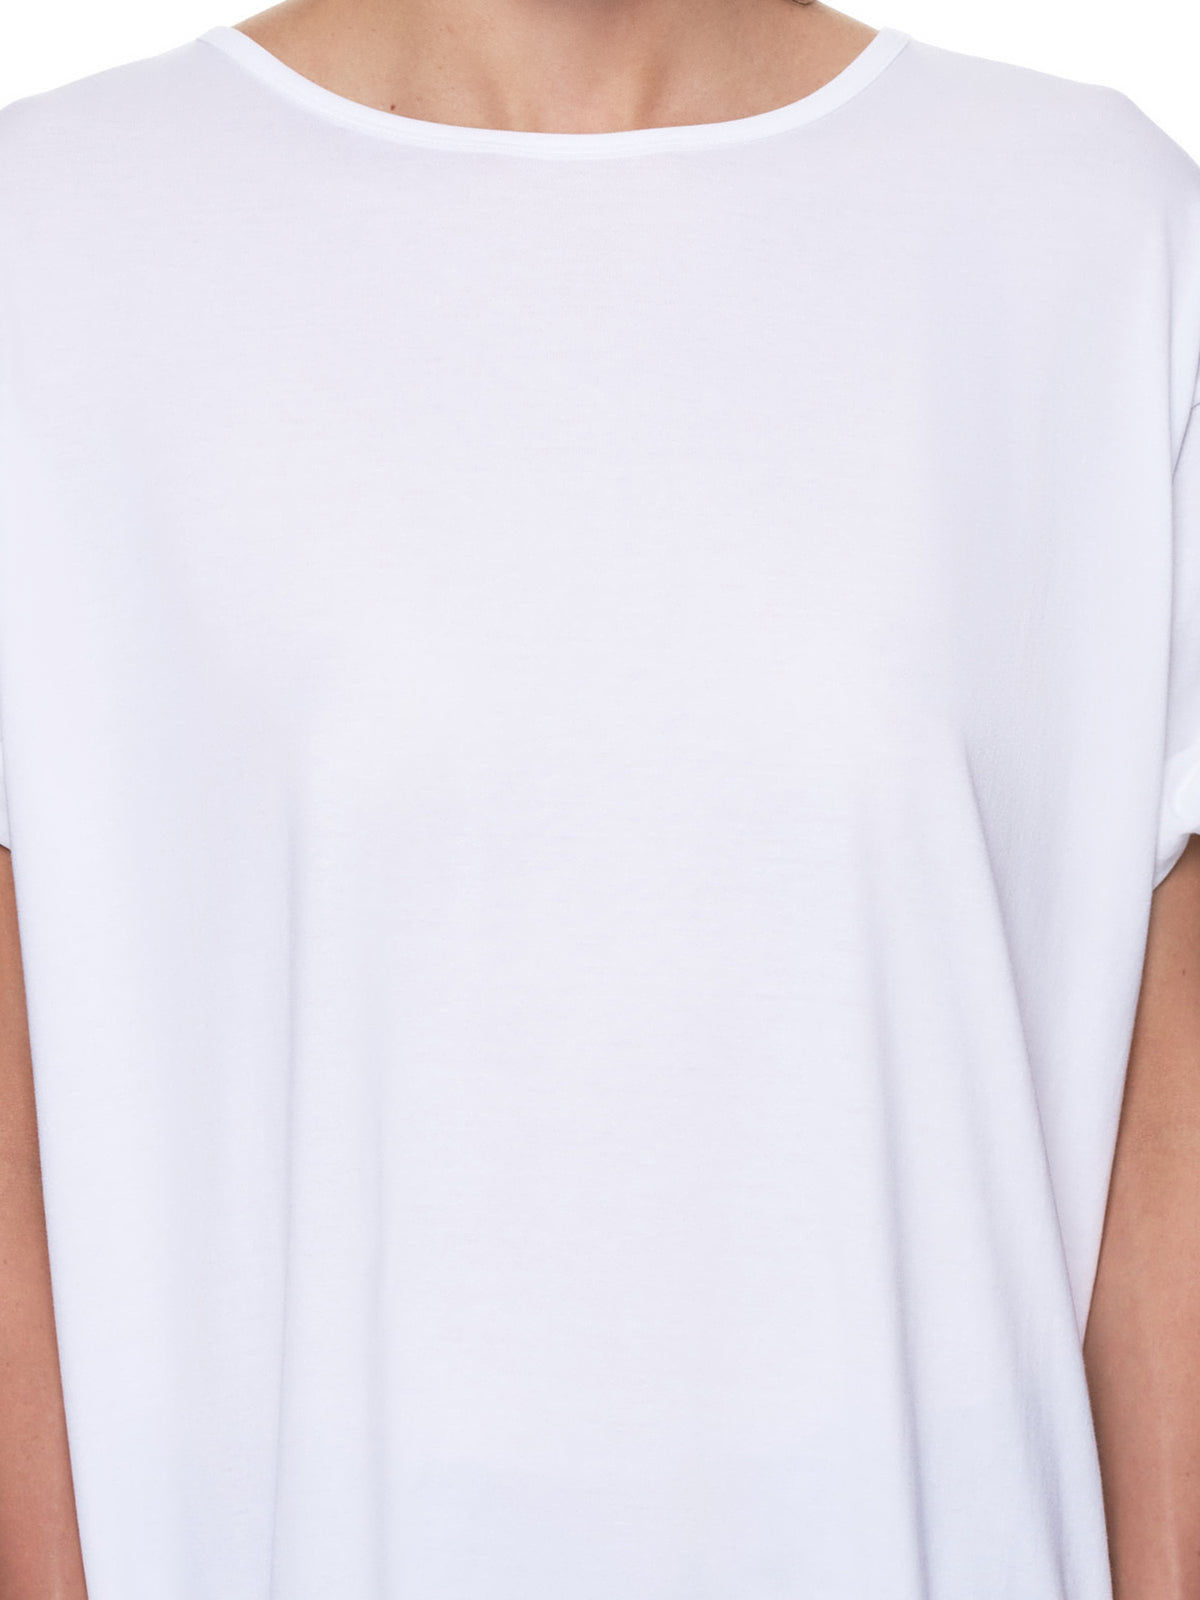 Oversized T-Shirt (YH-B30-029-WHITE)